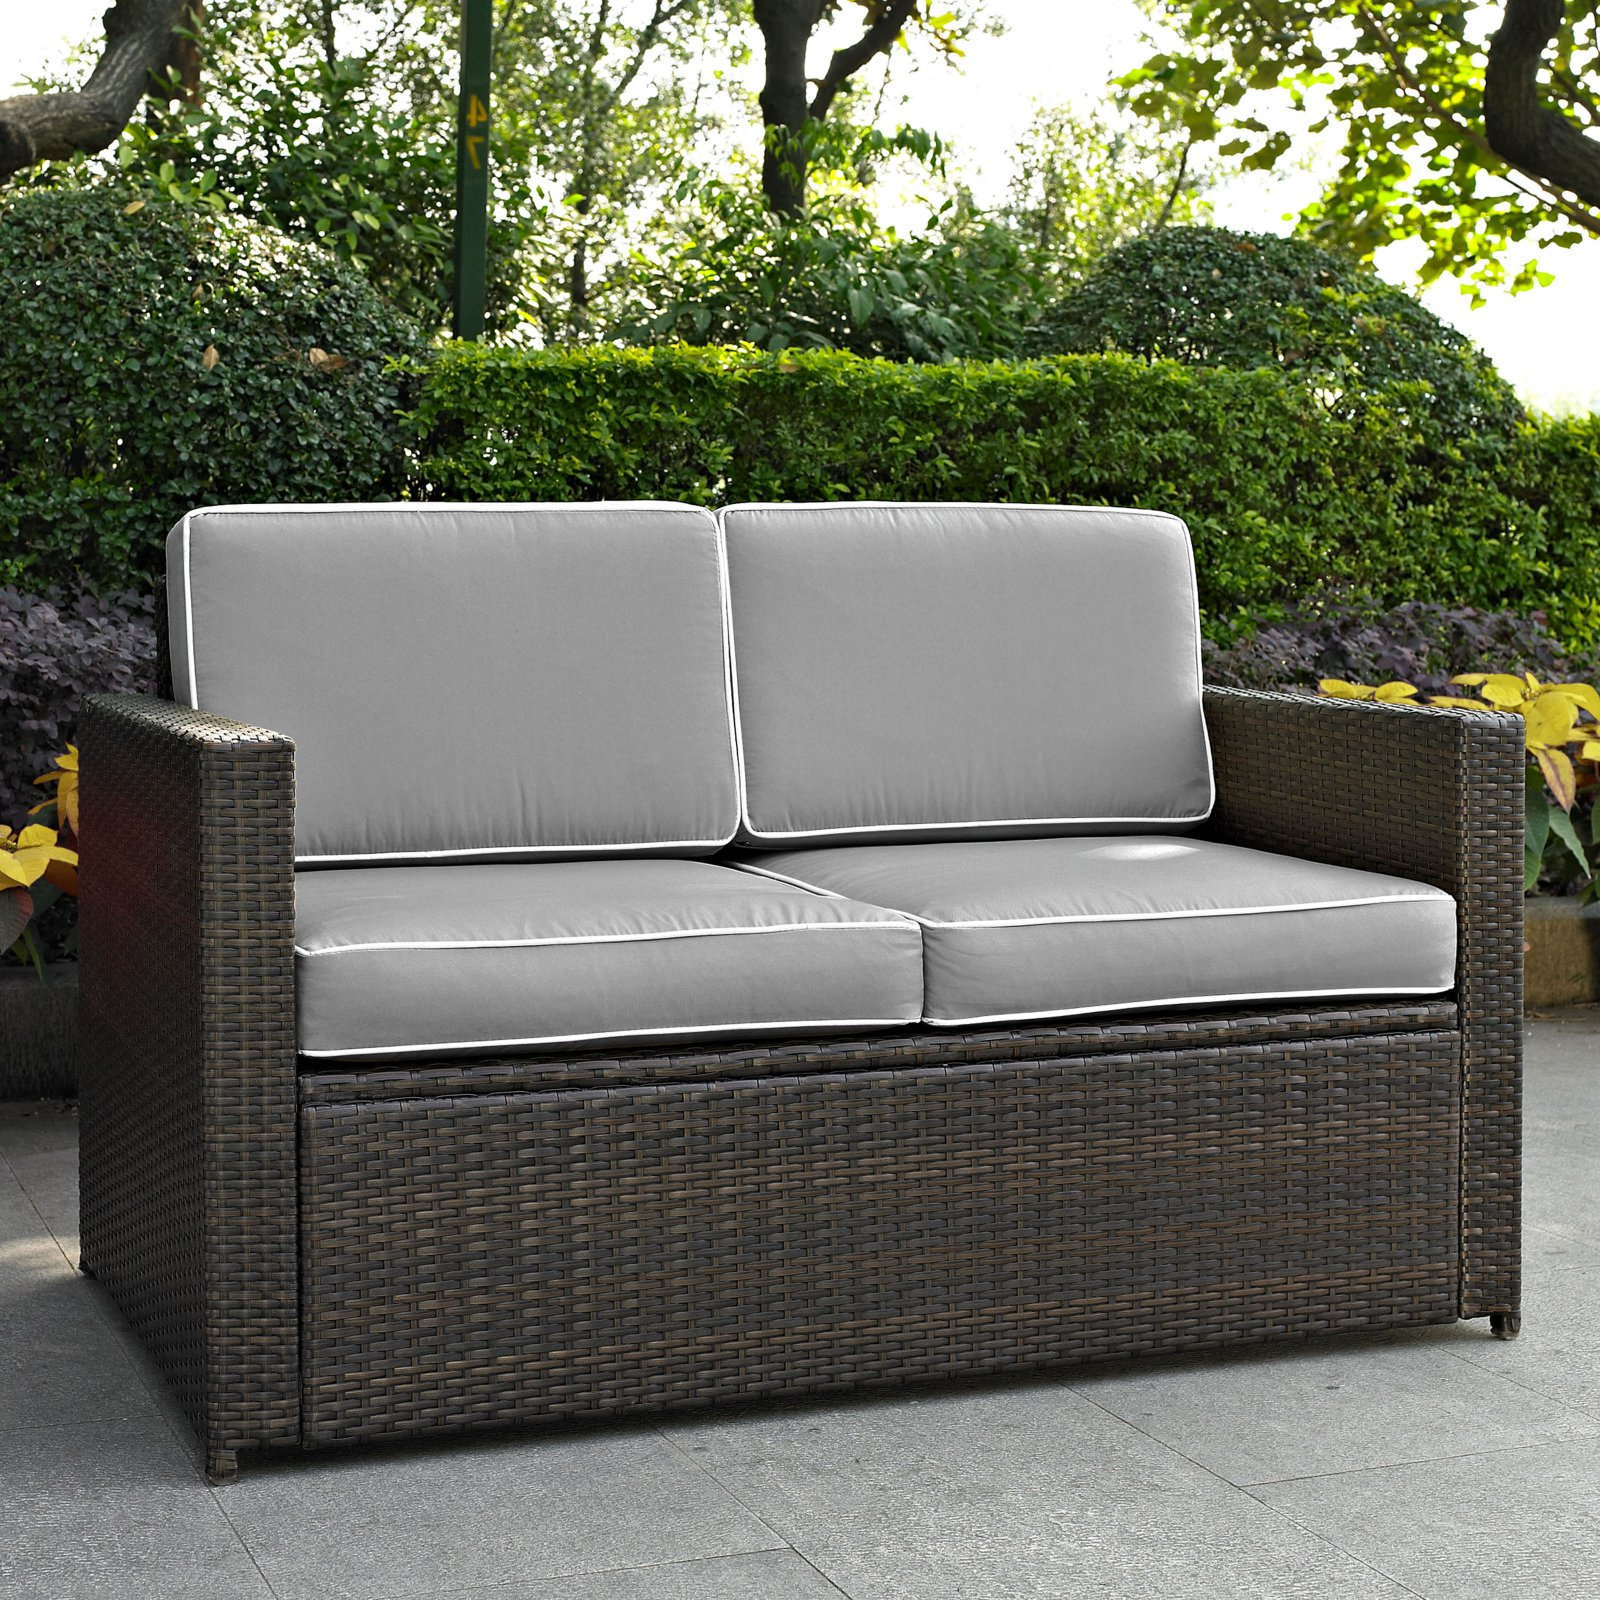 Mullenax Outdoor Loveseats With Cushions In Trendy Outdoor Crosley Furniture Palm Harbor All Weather Wicker (View 6 of 20)